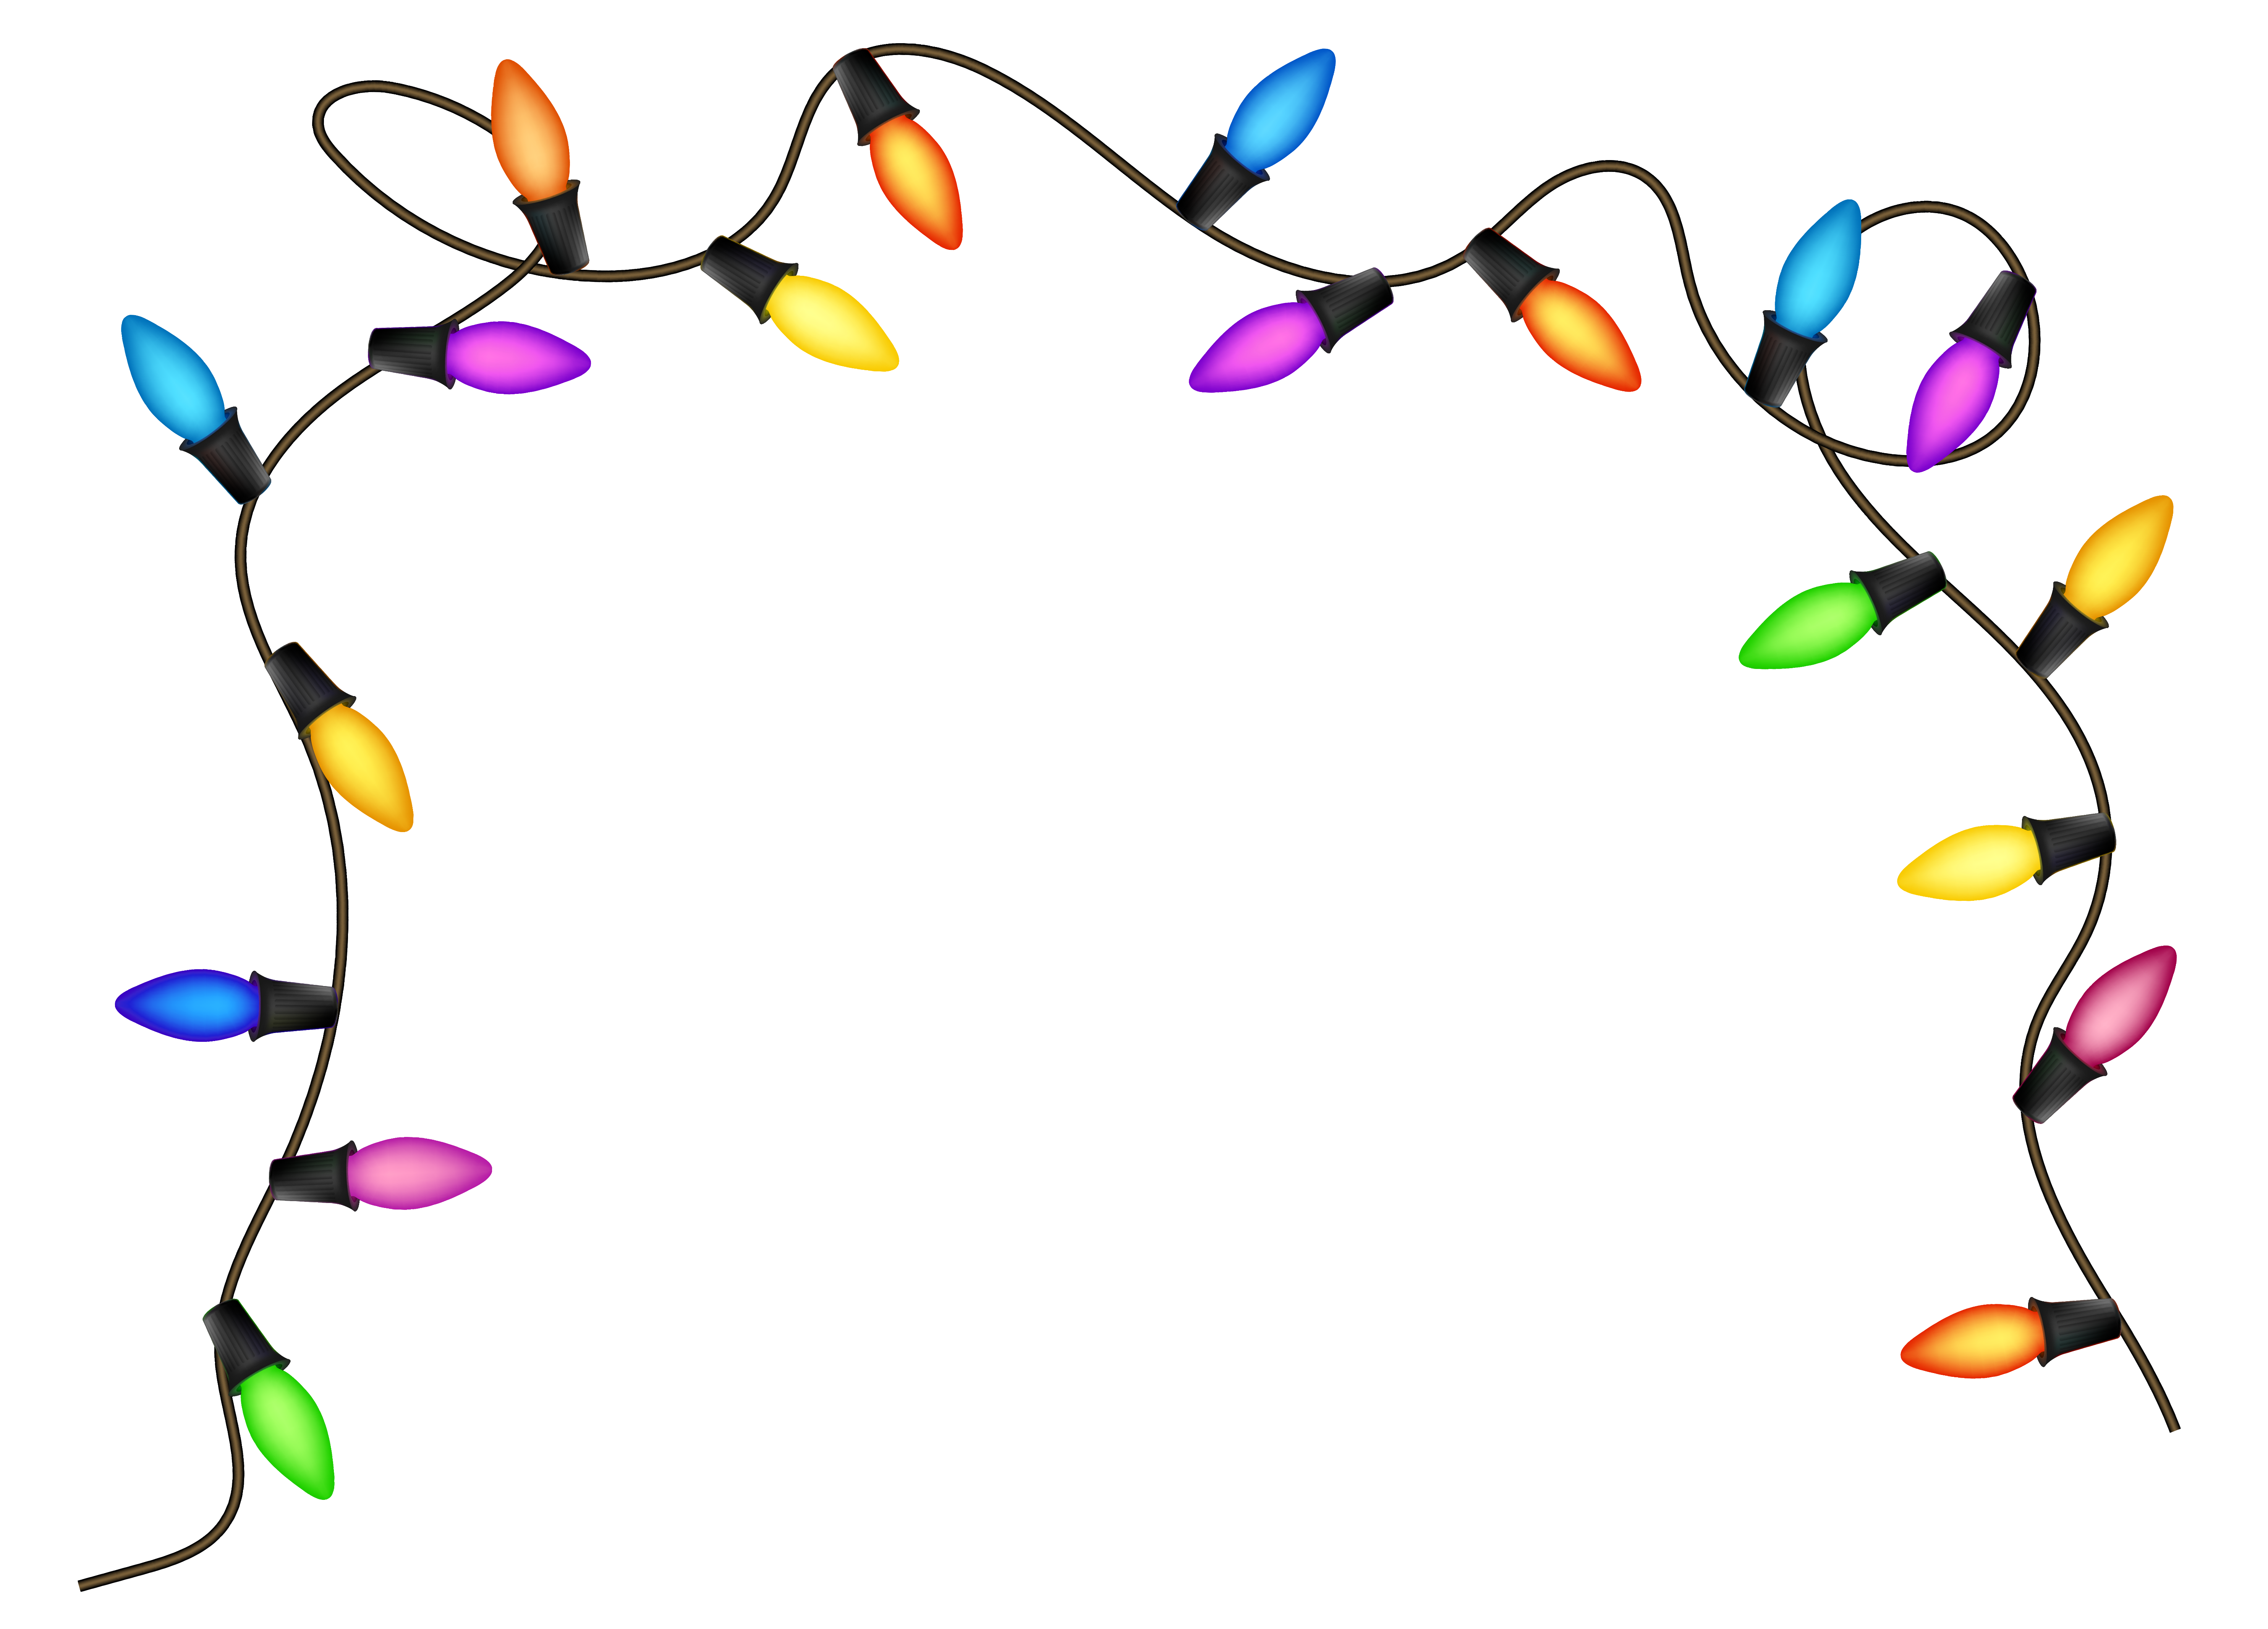 Free Christmas Lights Clipart Pictures Clipartix Christmas Lights Clipart Christmas Light Clips Christmas Lights